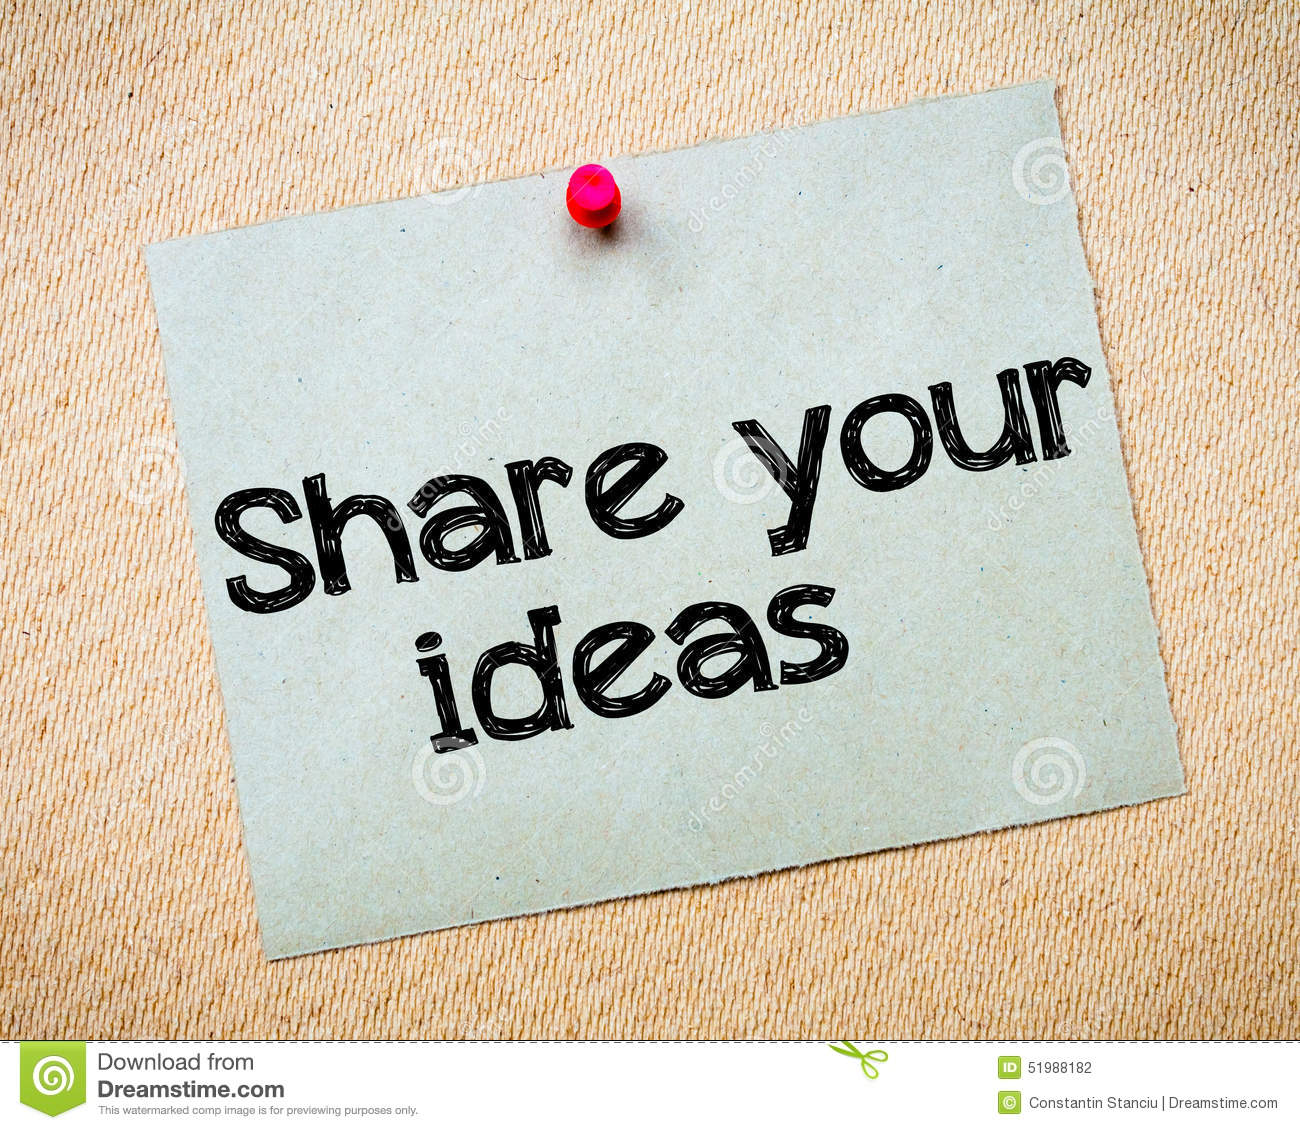 share your ideas message recycled paper note pinned on cork board concept image